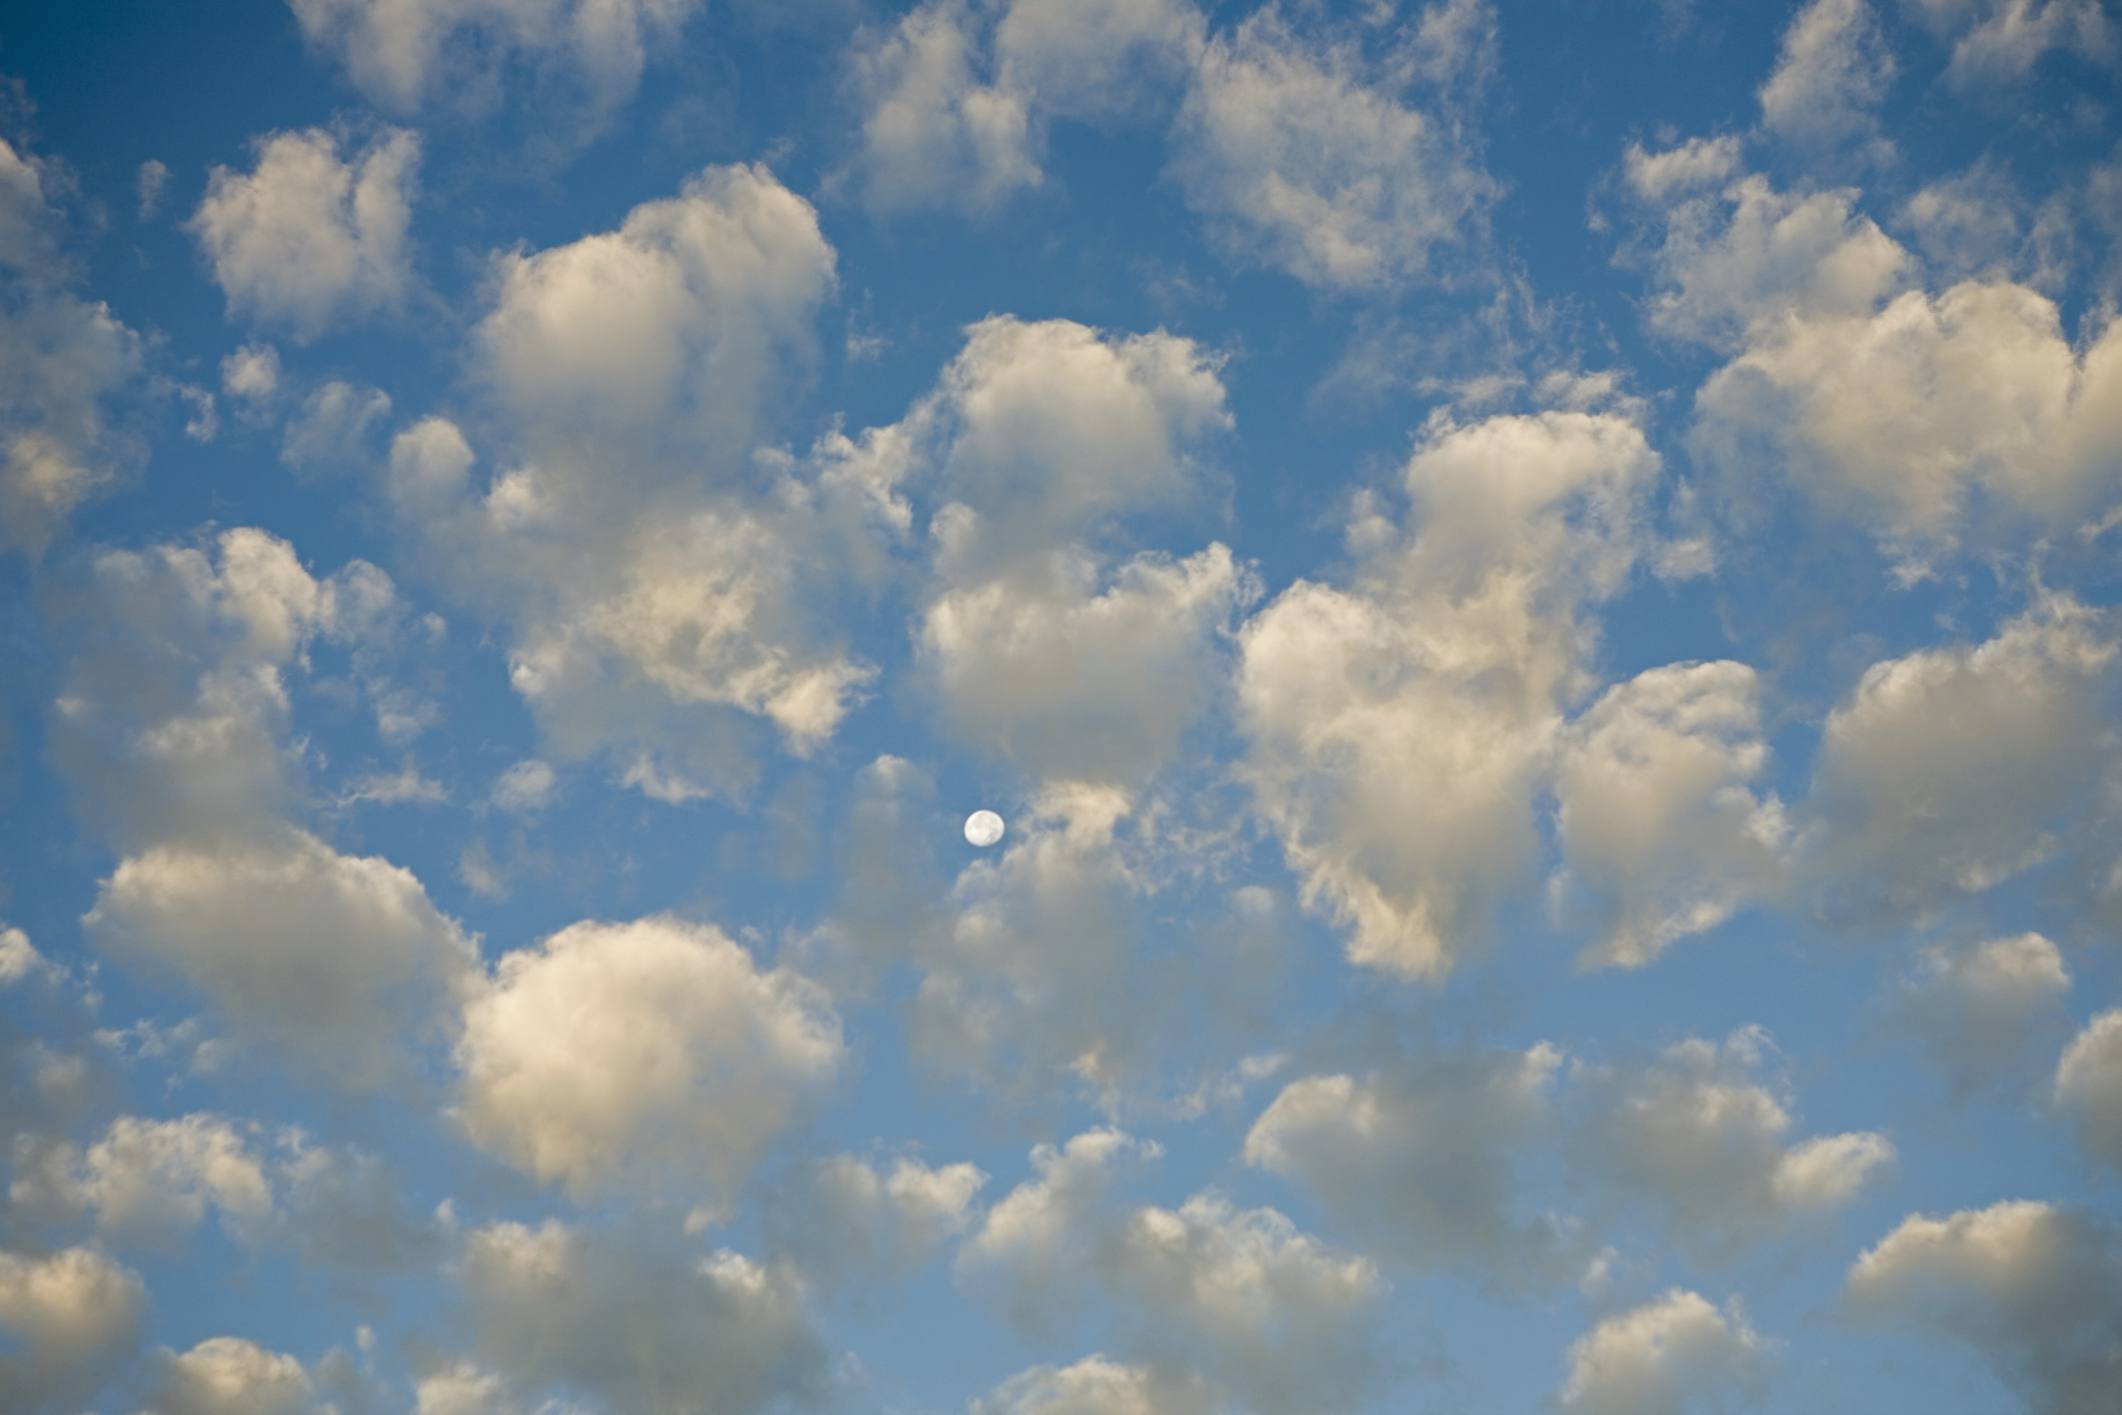 altocumulus and the moon